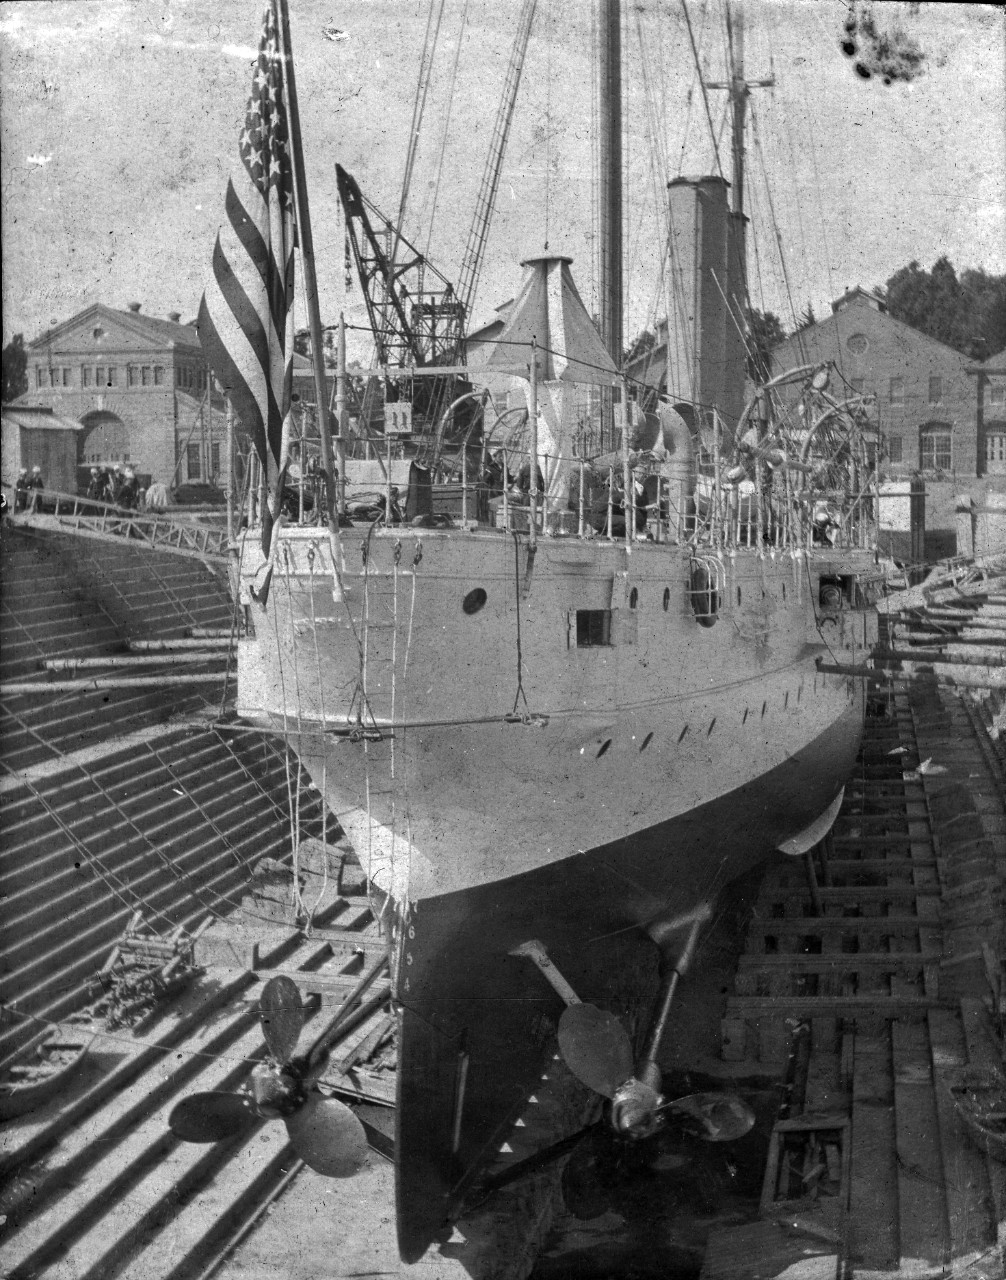 Single image of USS Marblehead (C-11) in dry dock at Mare Island, CA, circa early 1900s.